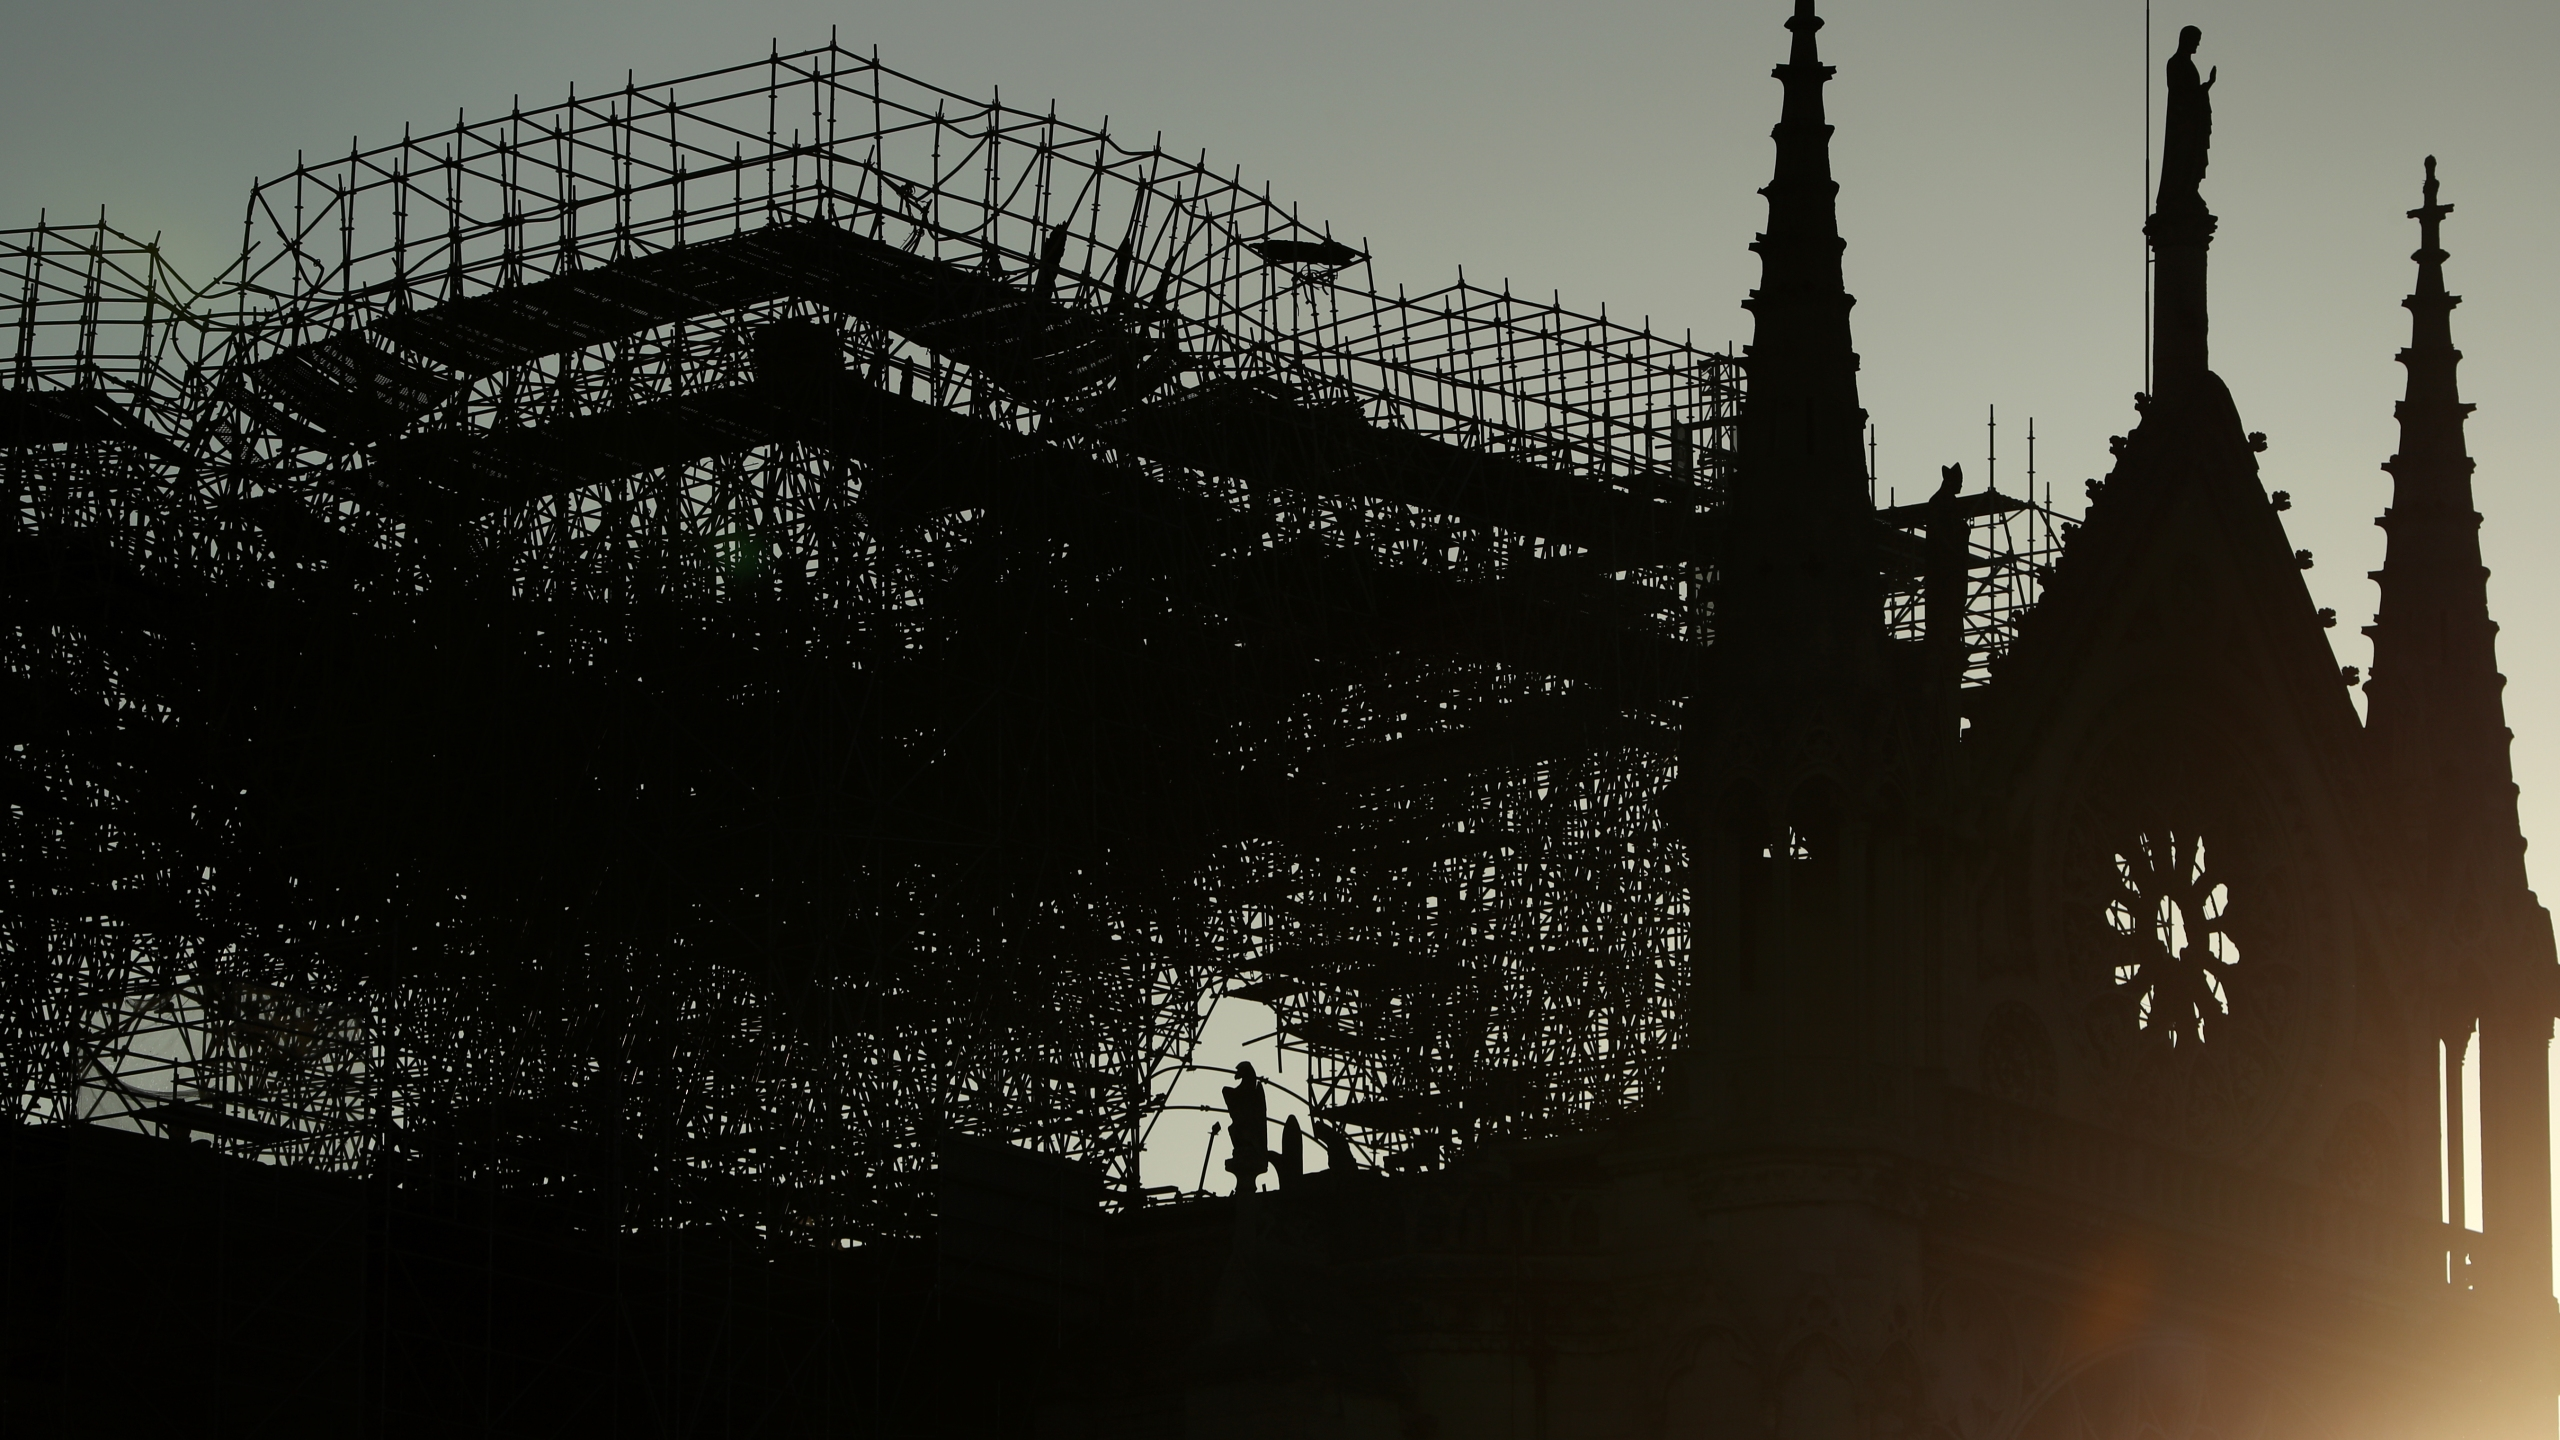 A silhouette of Notre-Dame Cathedral is seen at sunrise following a major fire on Monday on April 17, 2019 in Paris, France. (Credit: Dan Kitwood/Getty Images)